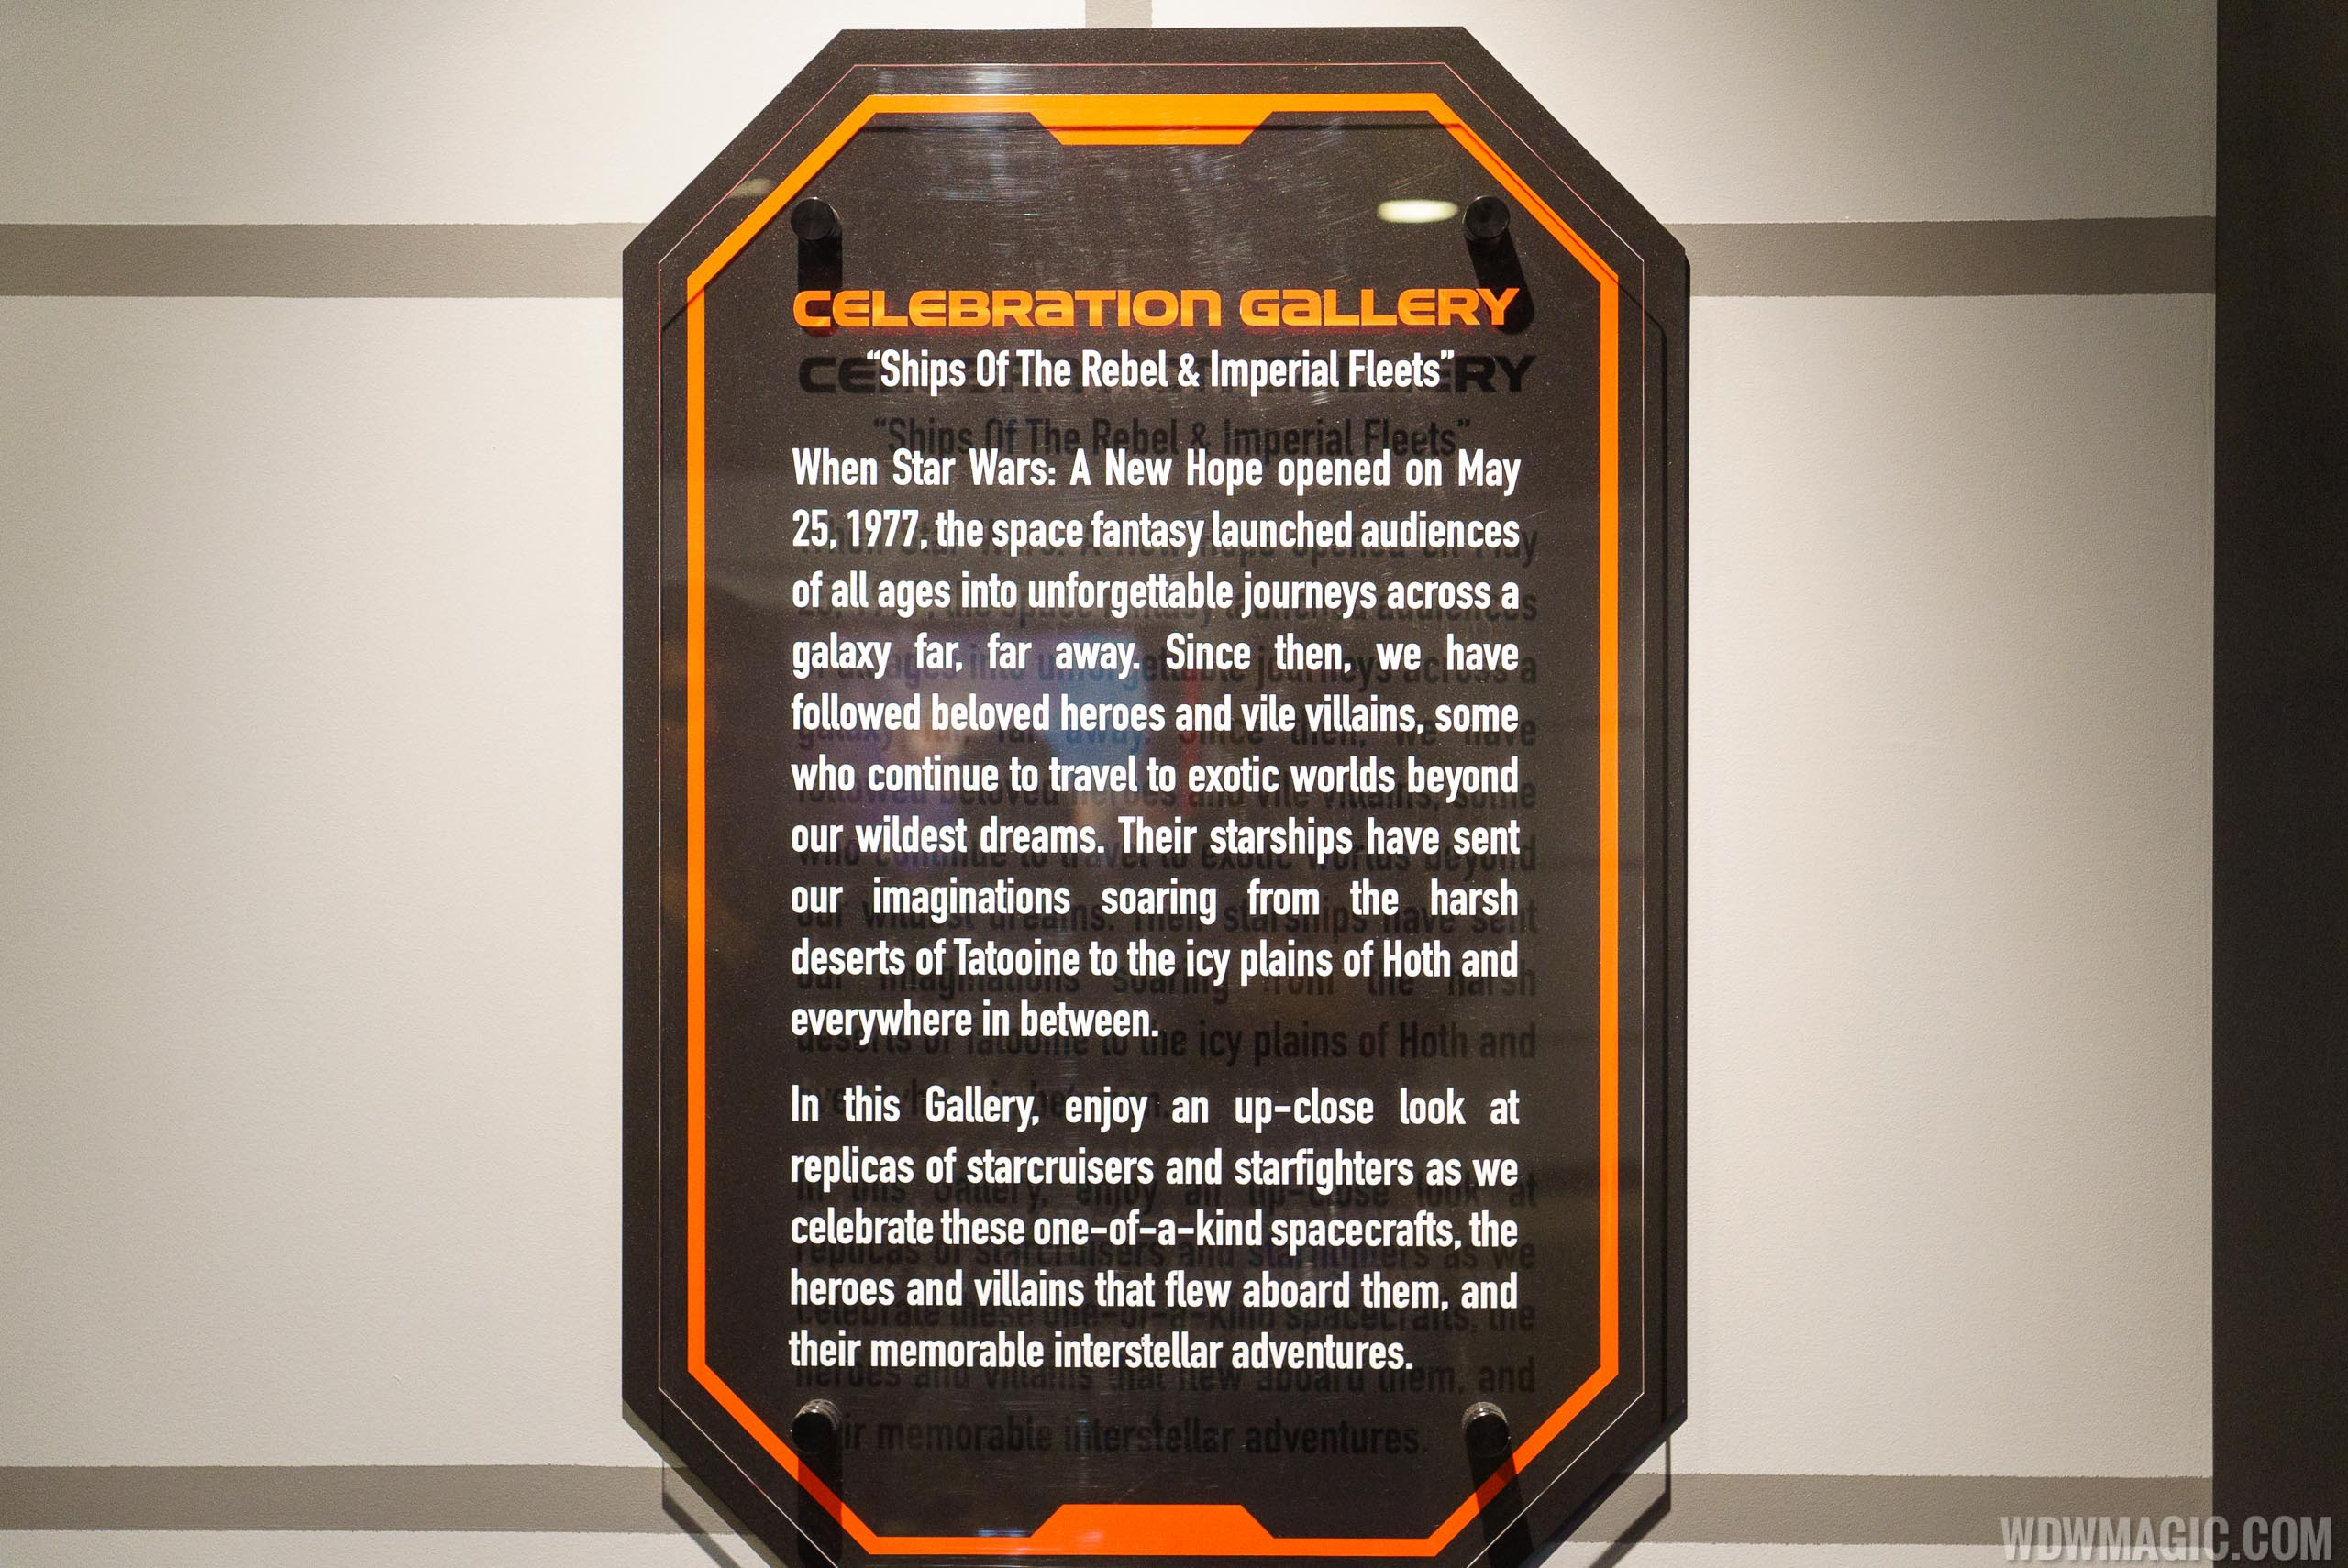 Star Wars Launch Bay - Celebration Gallery